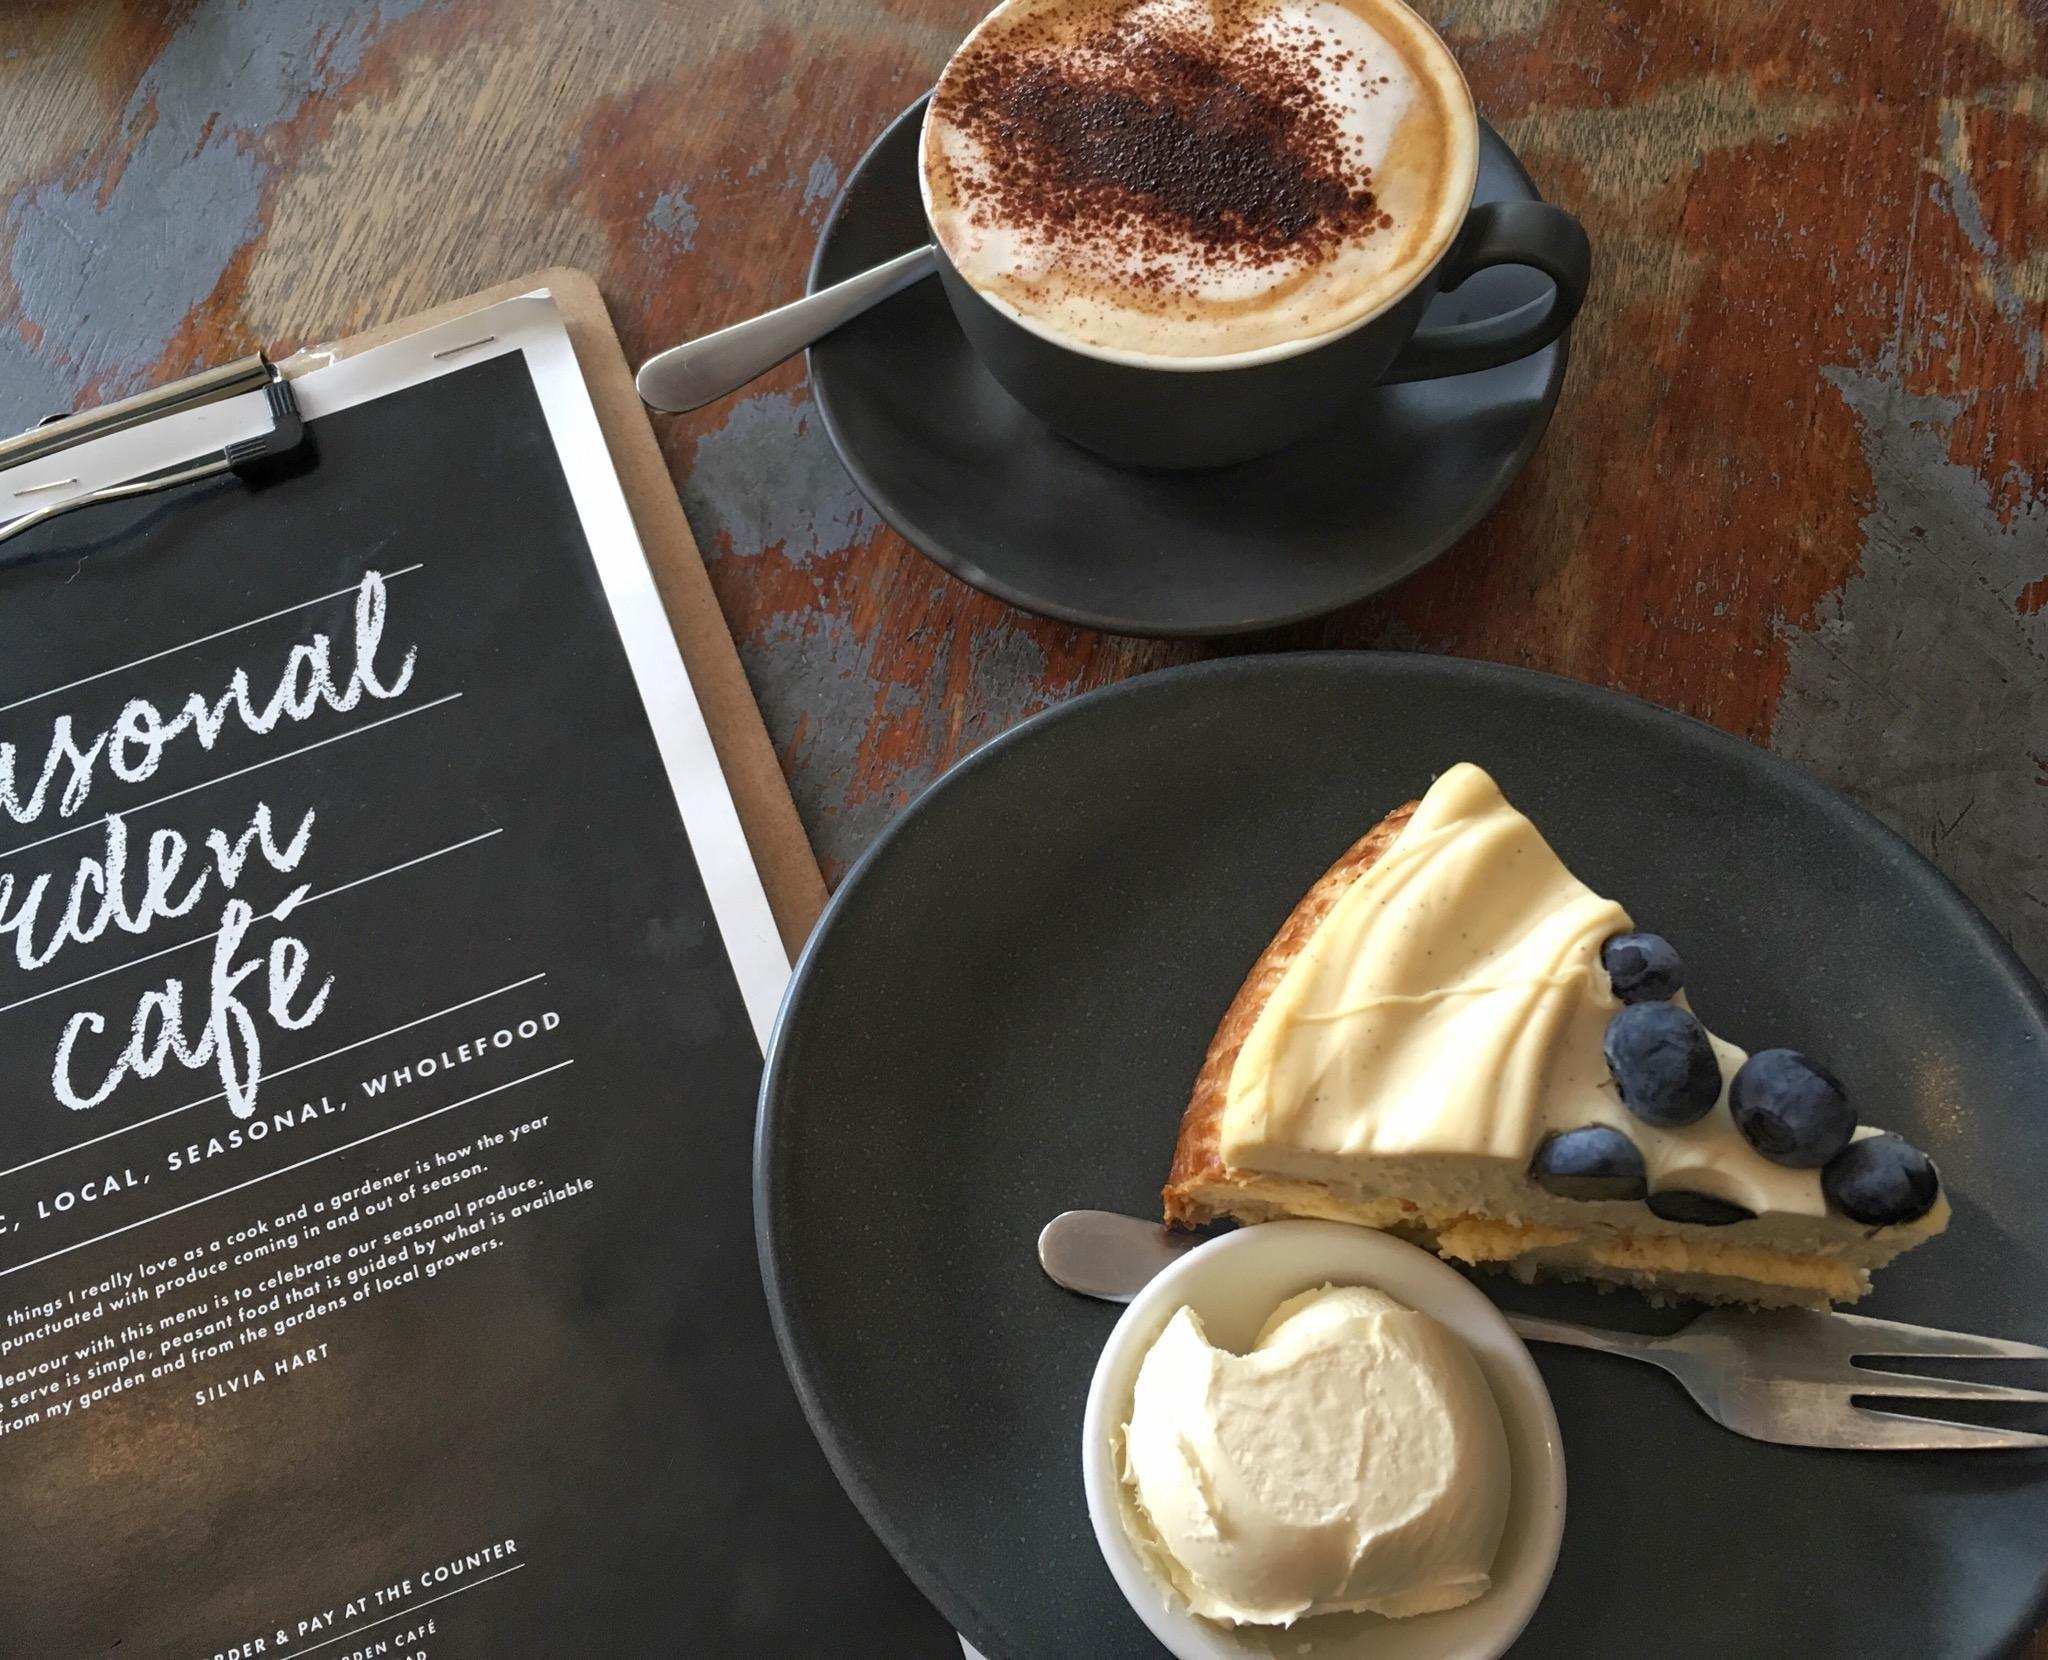 Happy sunday  sundayessentials coffeelover cheesecake kaffeekraenzchen  3ae158d2 210b 4c01 ac32 619153b06db6